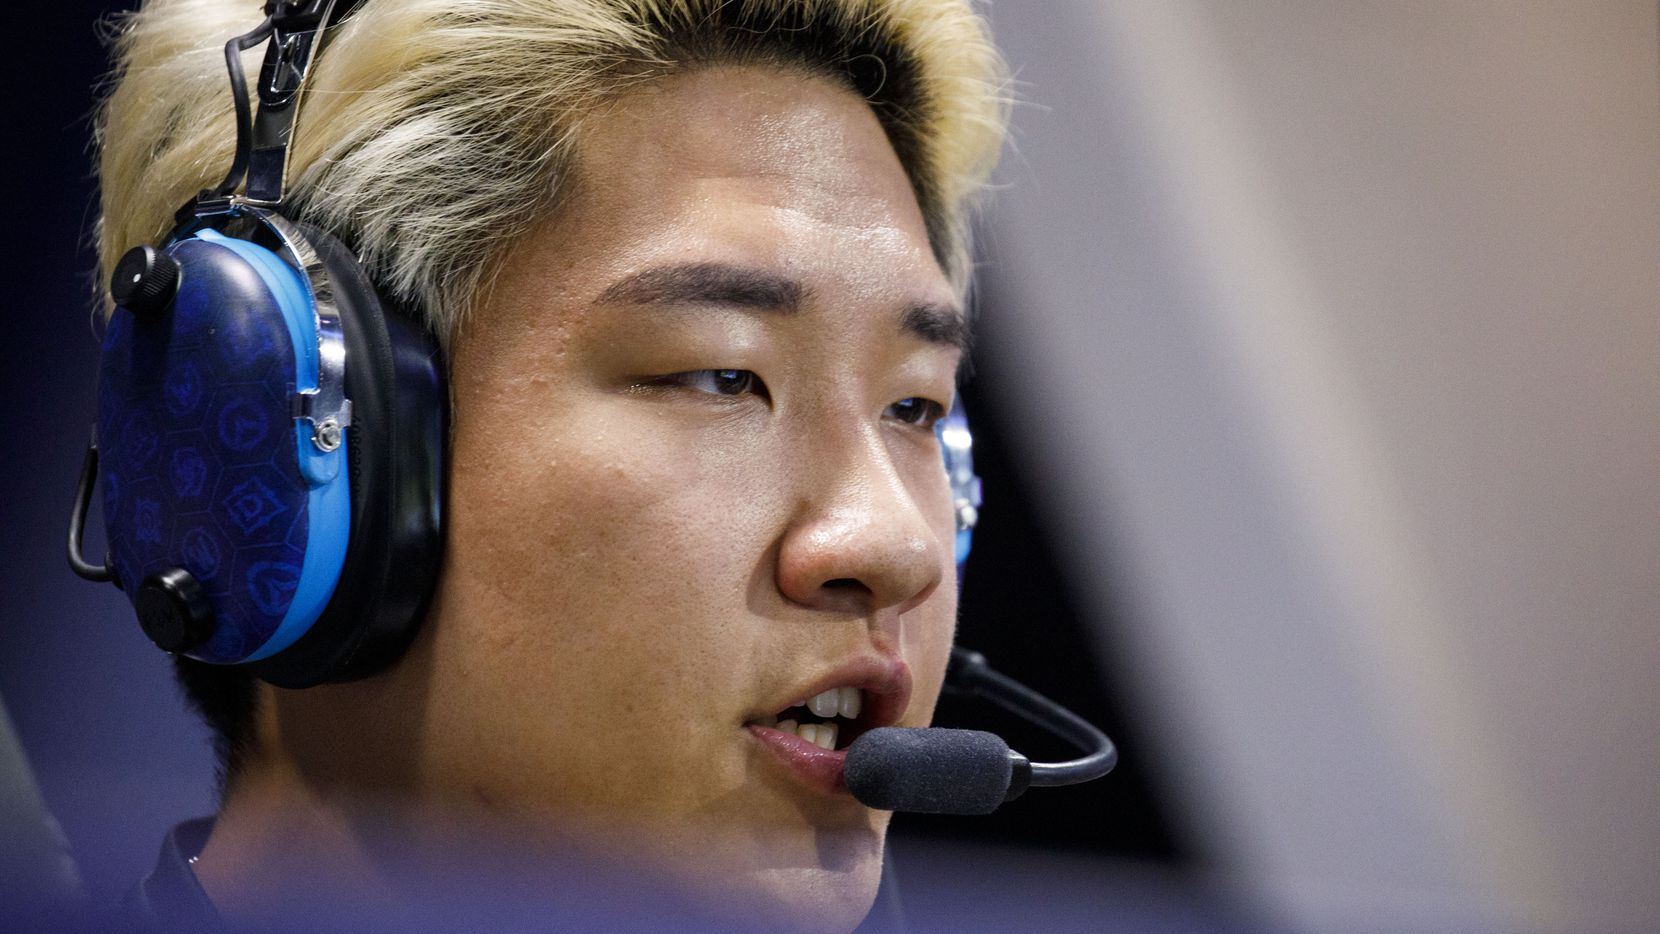 "Minseok Son - ""Oge"" during the Overwatch League match between the Dallas Fuel and LA Gladiators on Friday, August 9, 2019 at Blizzard Arena in Burbank, CA. (Photo by Patrick T. Fallon/Special Contributor to The Dallas Morning News)"